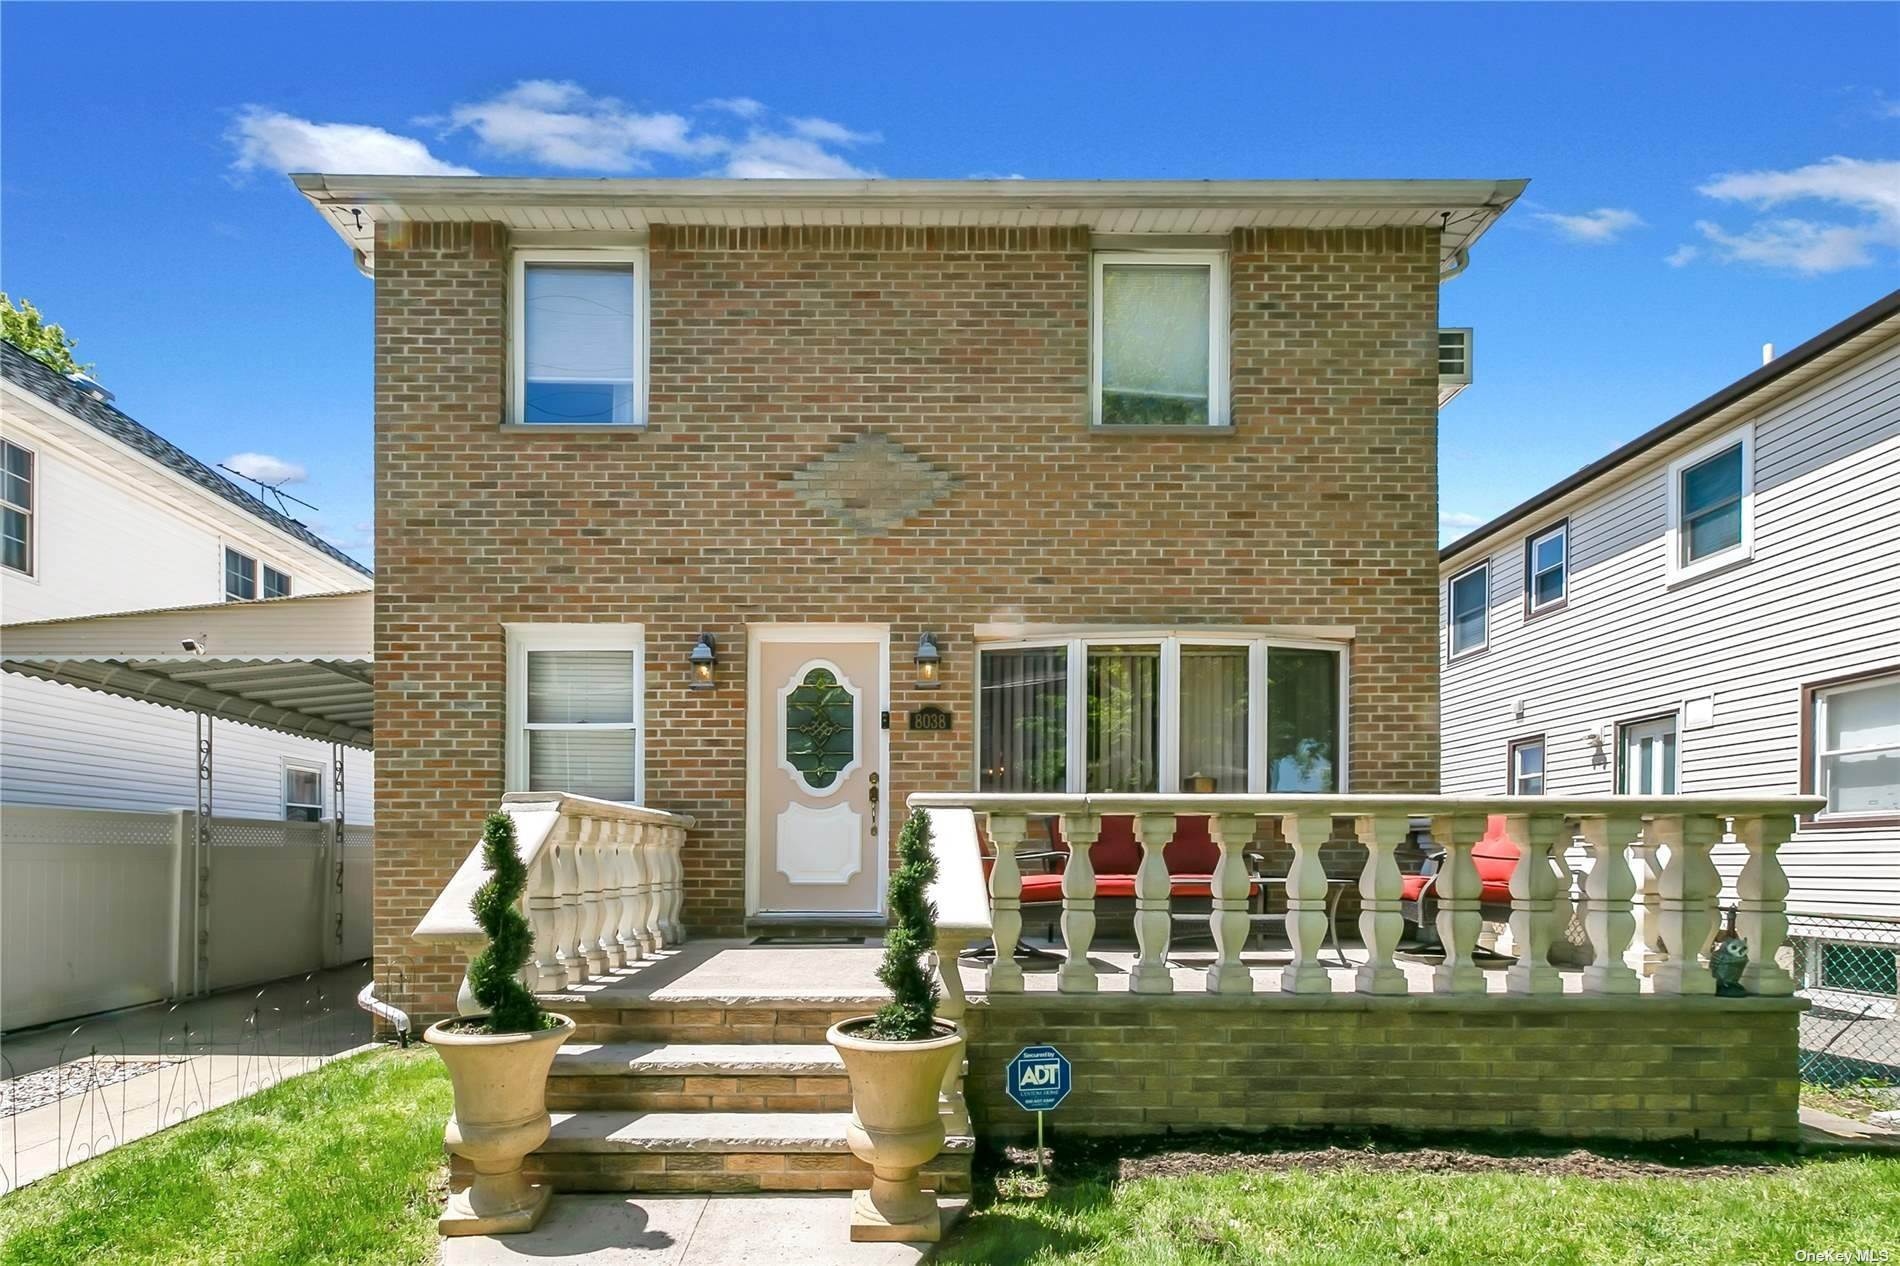 Residential for Sale at 80-38 261 Street Glen Oaks, New York 11004 United States